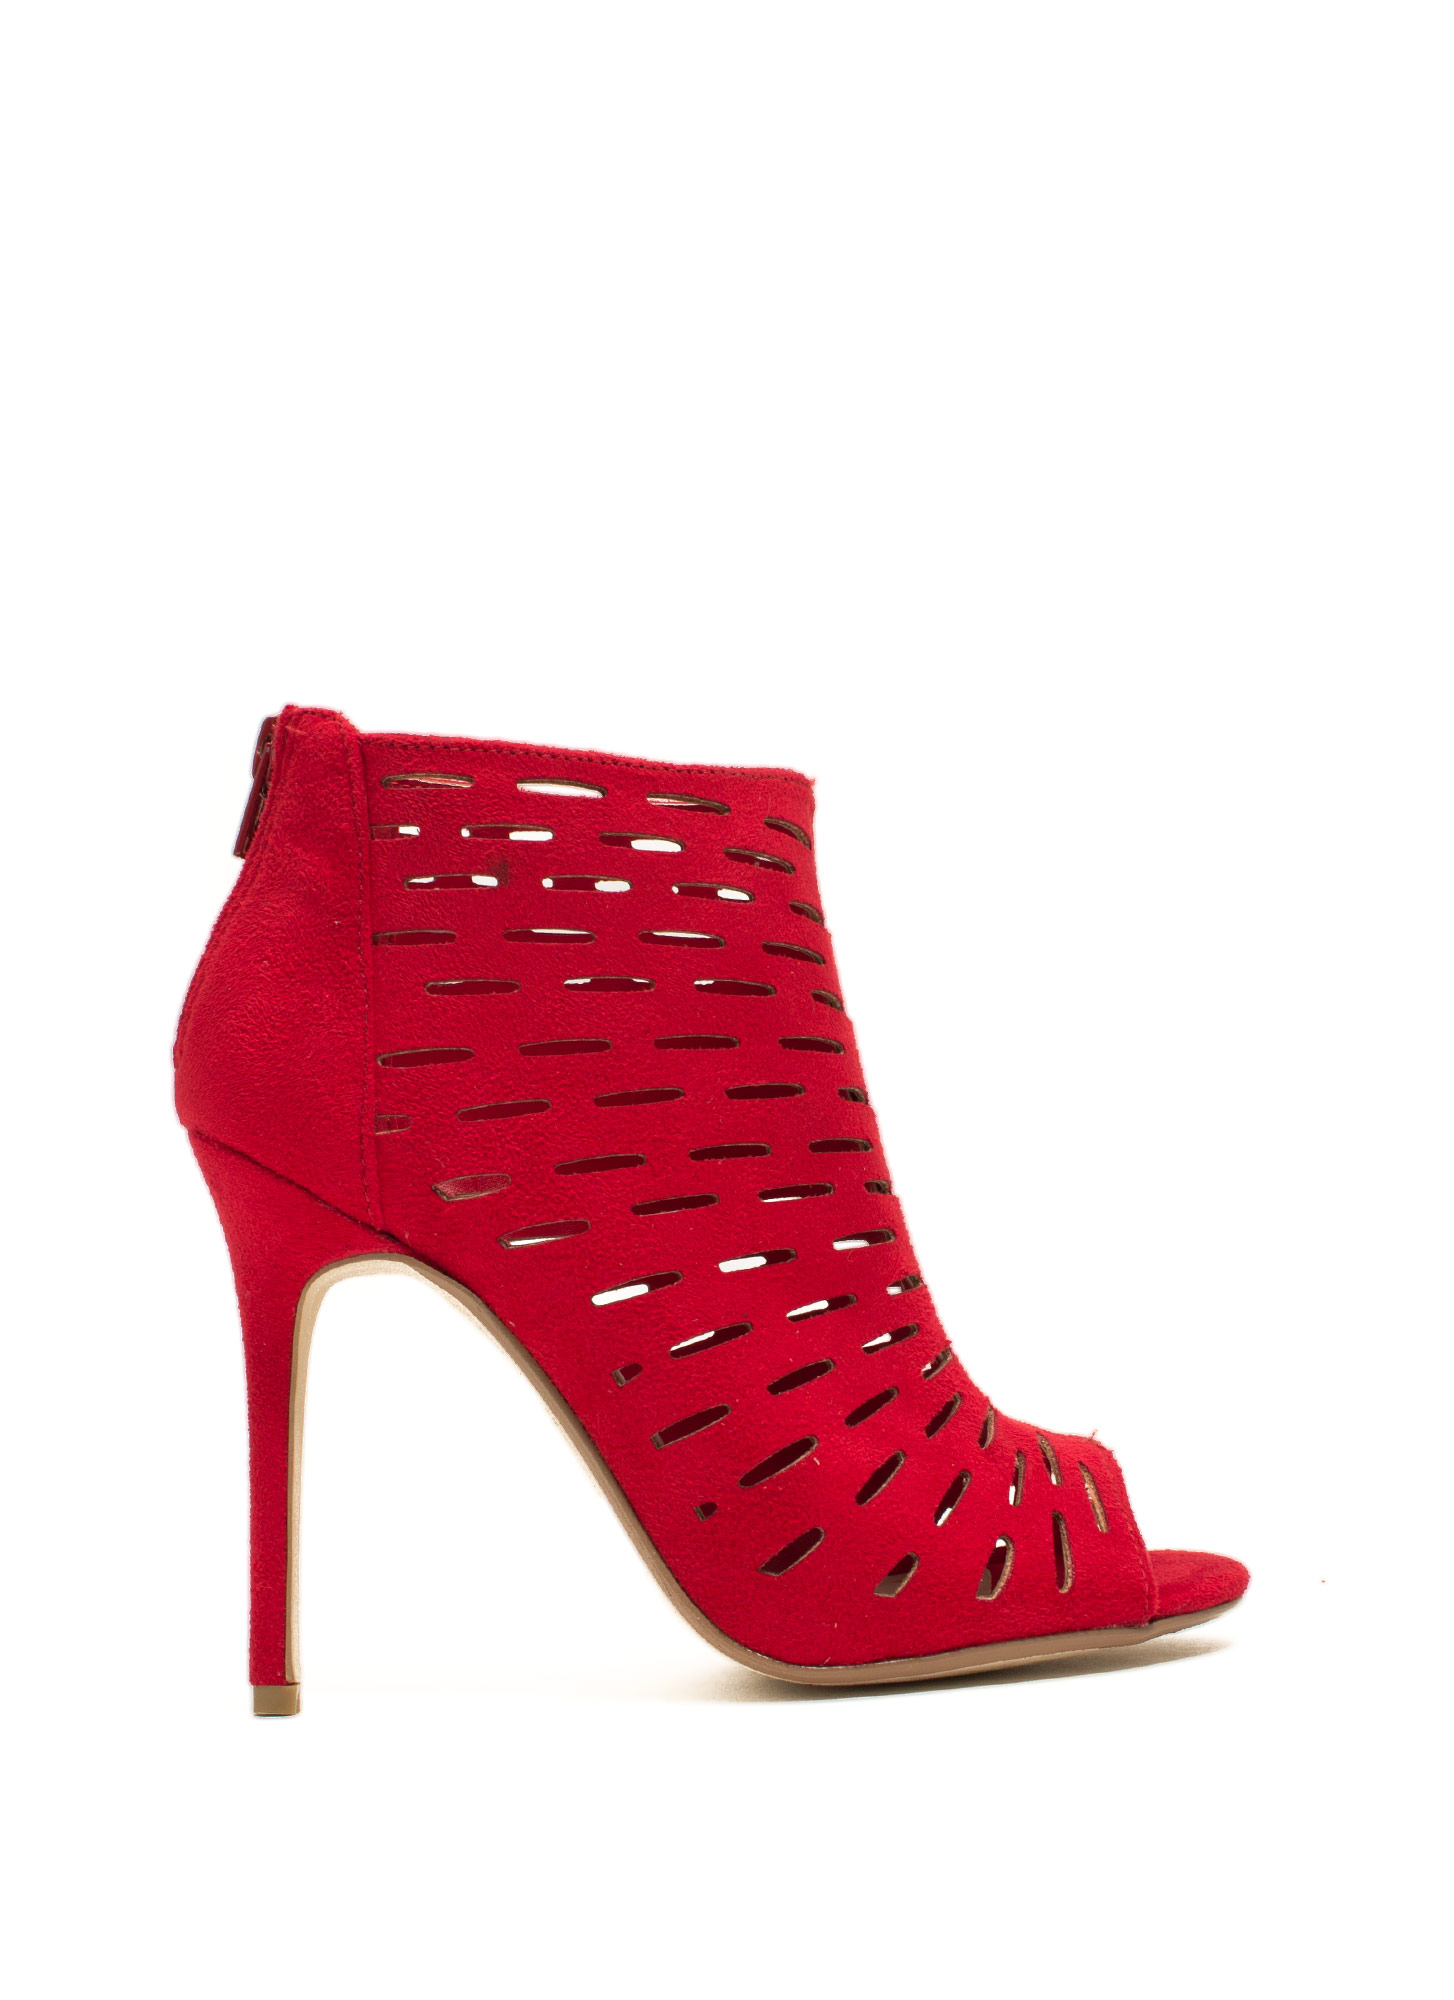 Slit Tight Bootie Heels RED